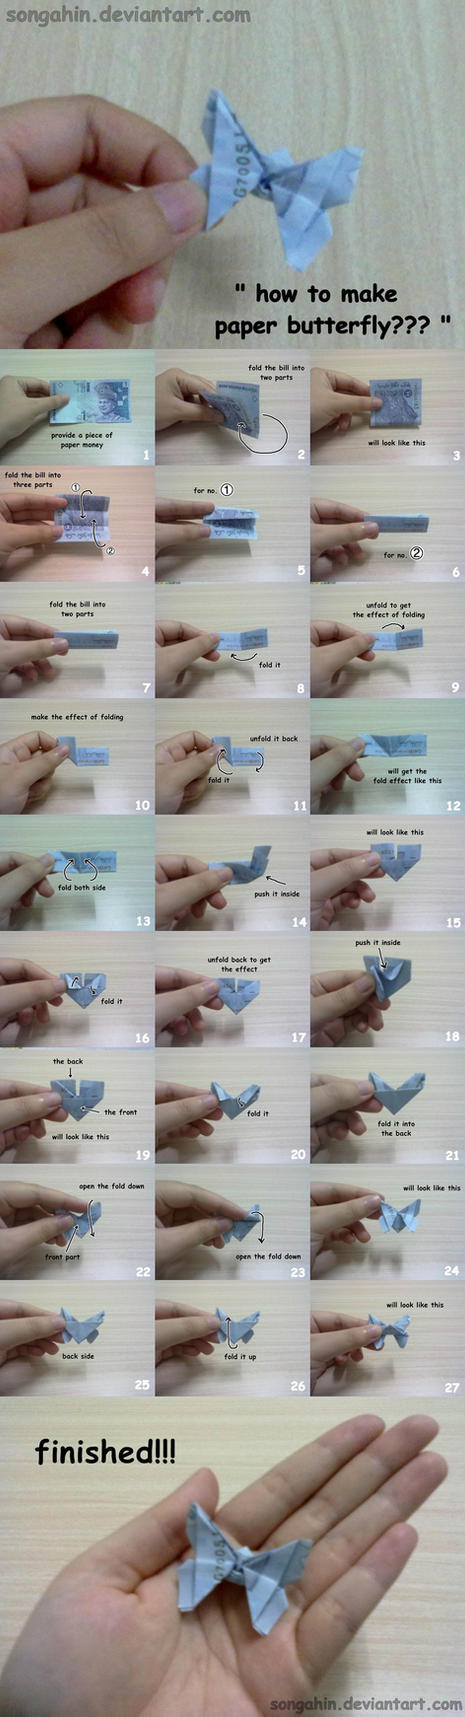 Paper Butterfly Tutorial... by SongAhIn